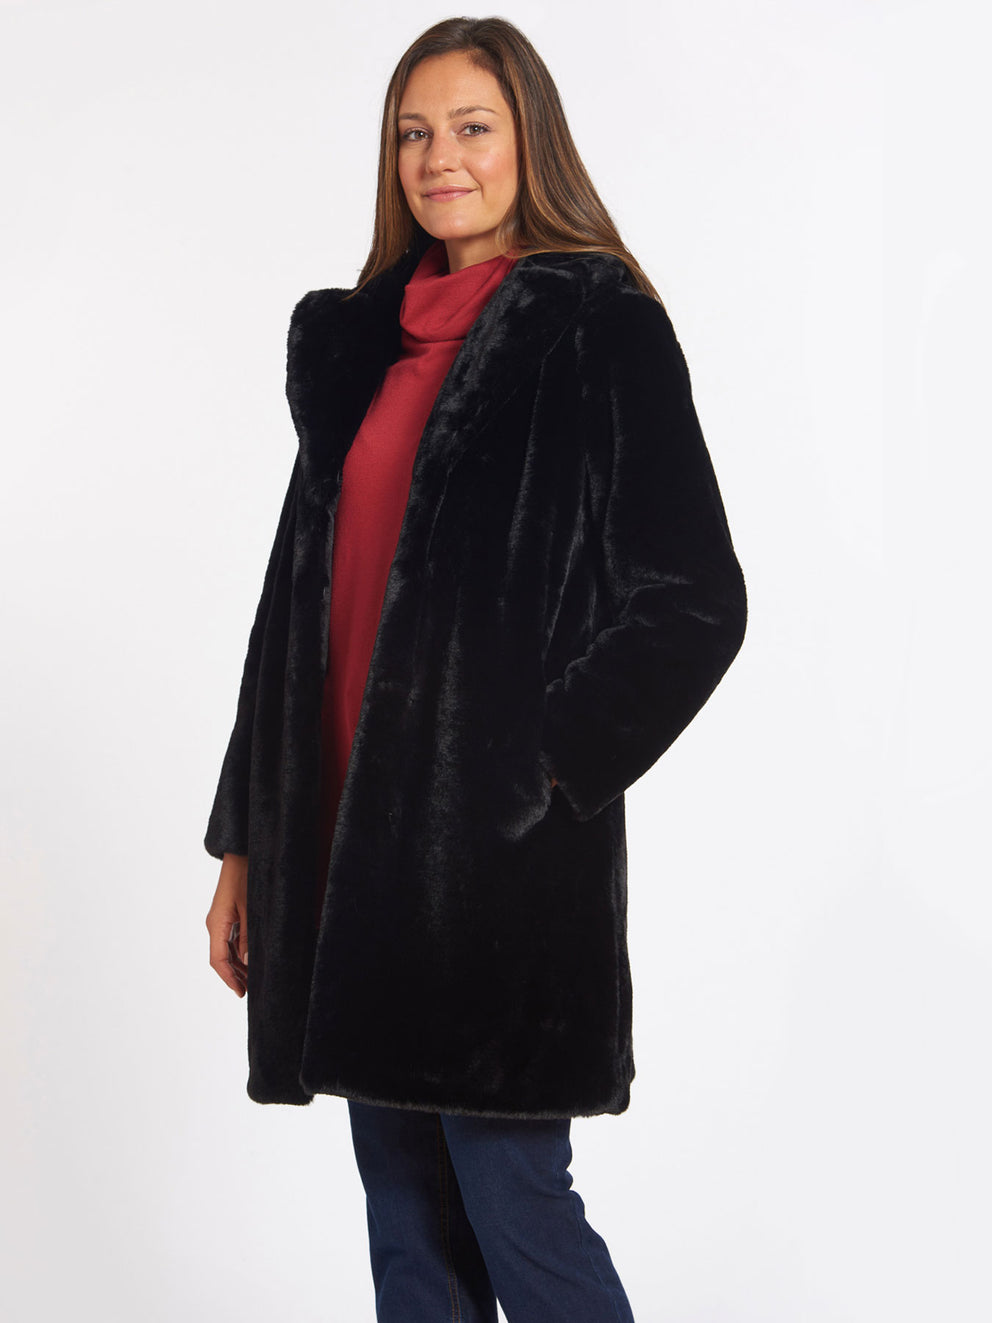 The Jones New York Faux Fur Jacket in color Black - Image Position 2